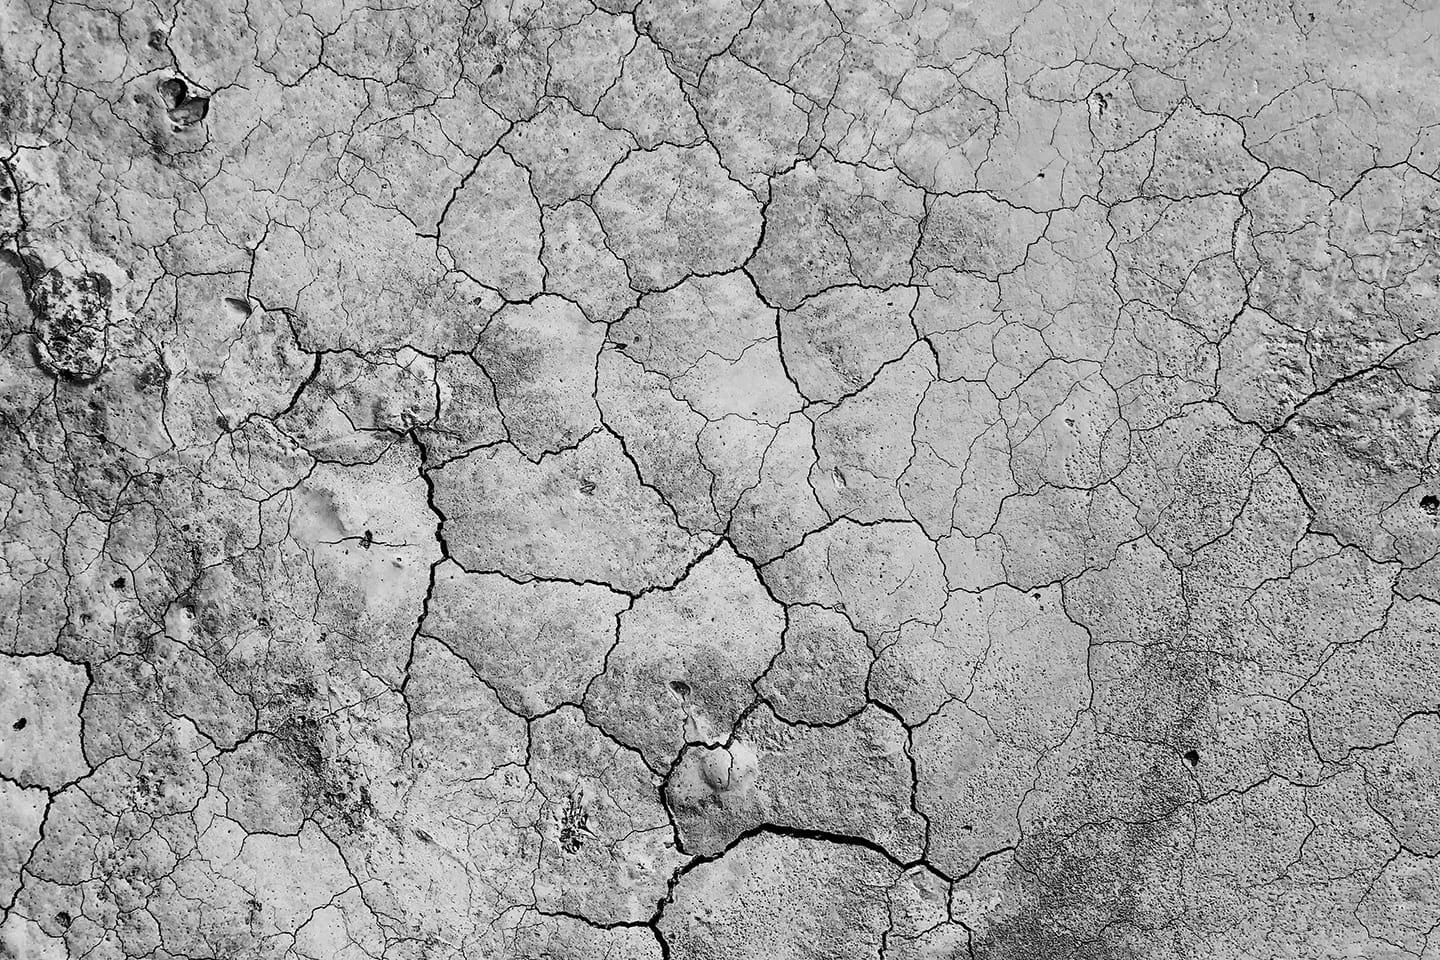 Grey dry cracked earth